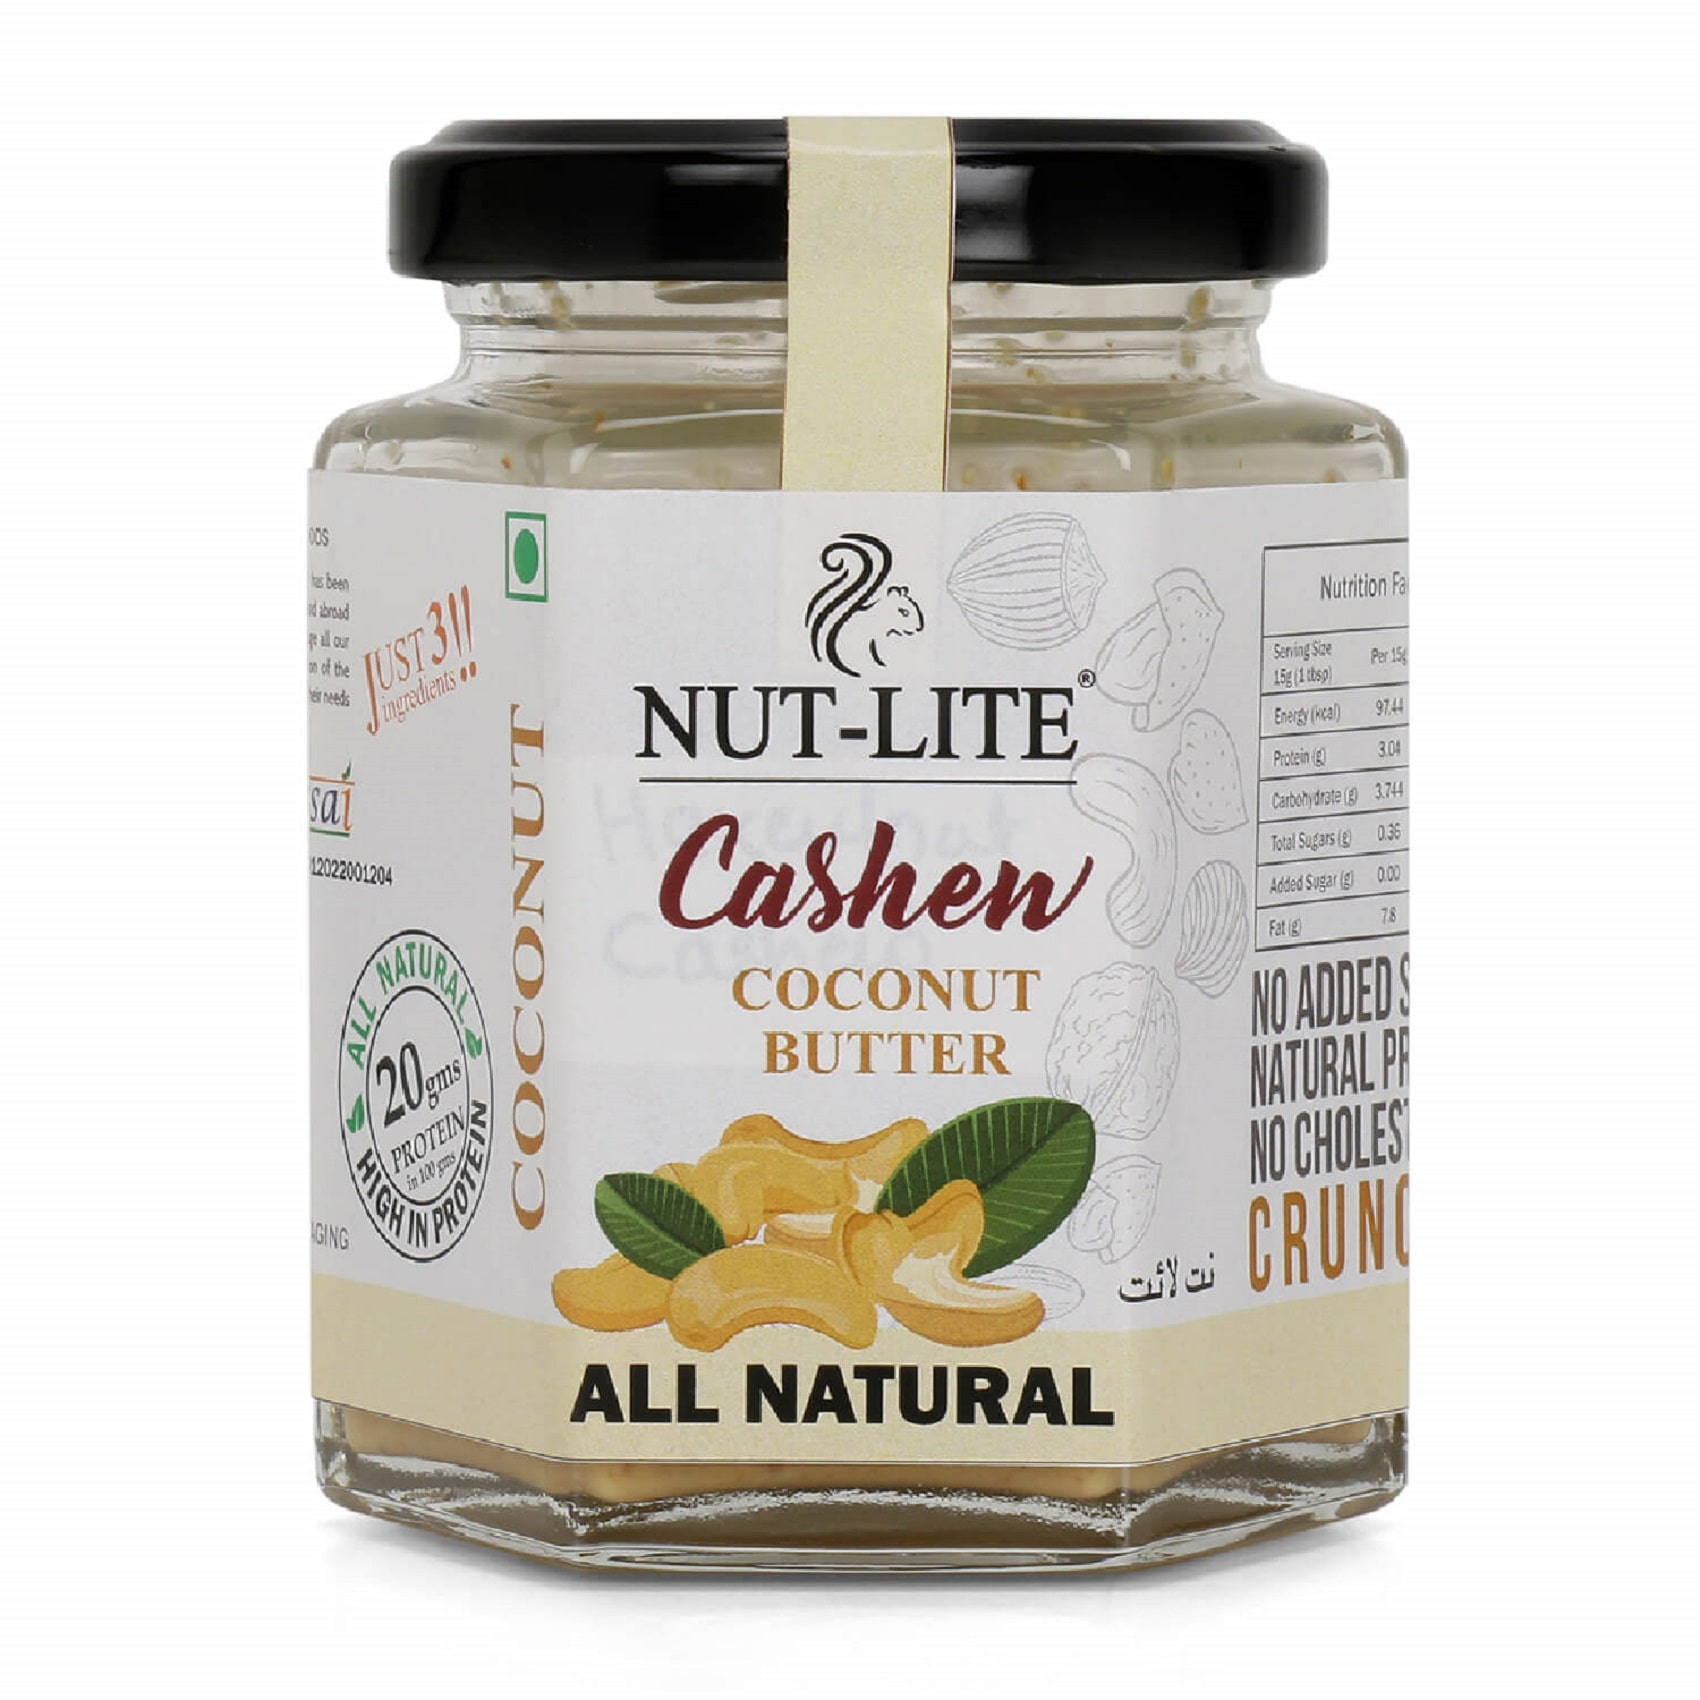 Nutlite Cashew Coconut Crunchy Butter - Boost Immunity All Natural Protein No Added Sugar Rich In Fatty Acids Iron & Zinc 150 g (Pack Of 1)